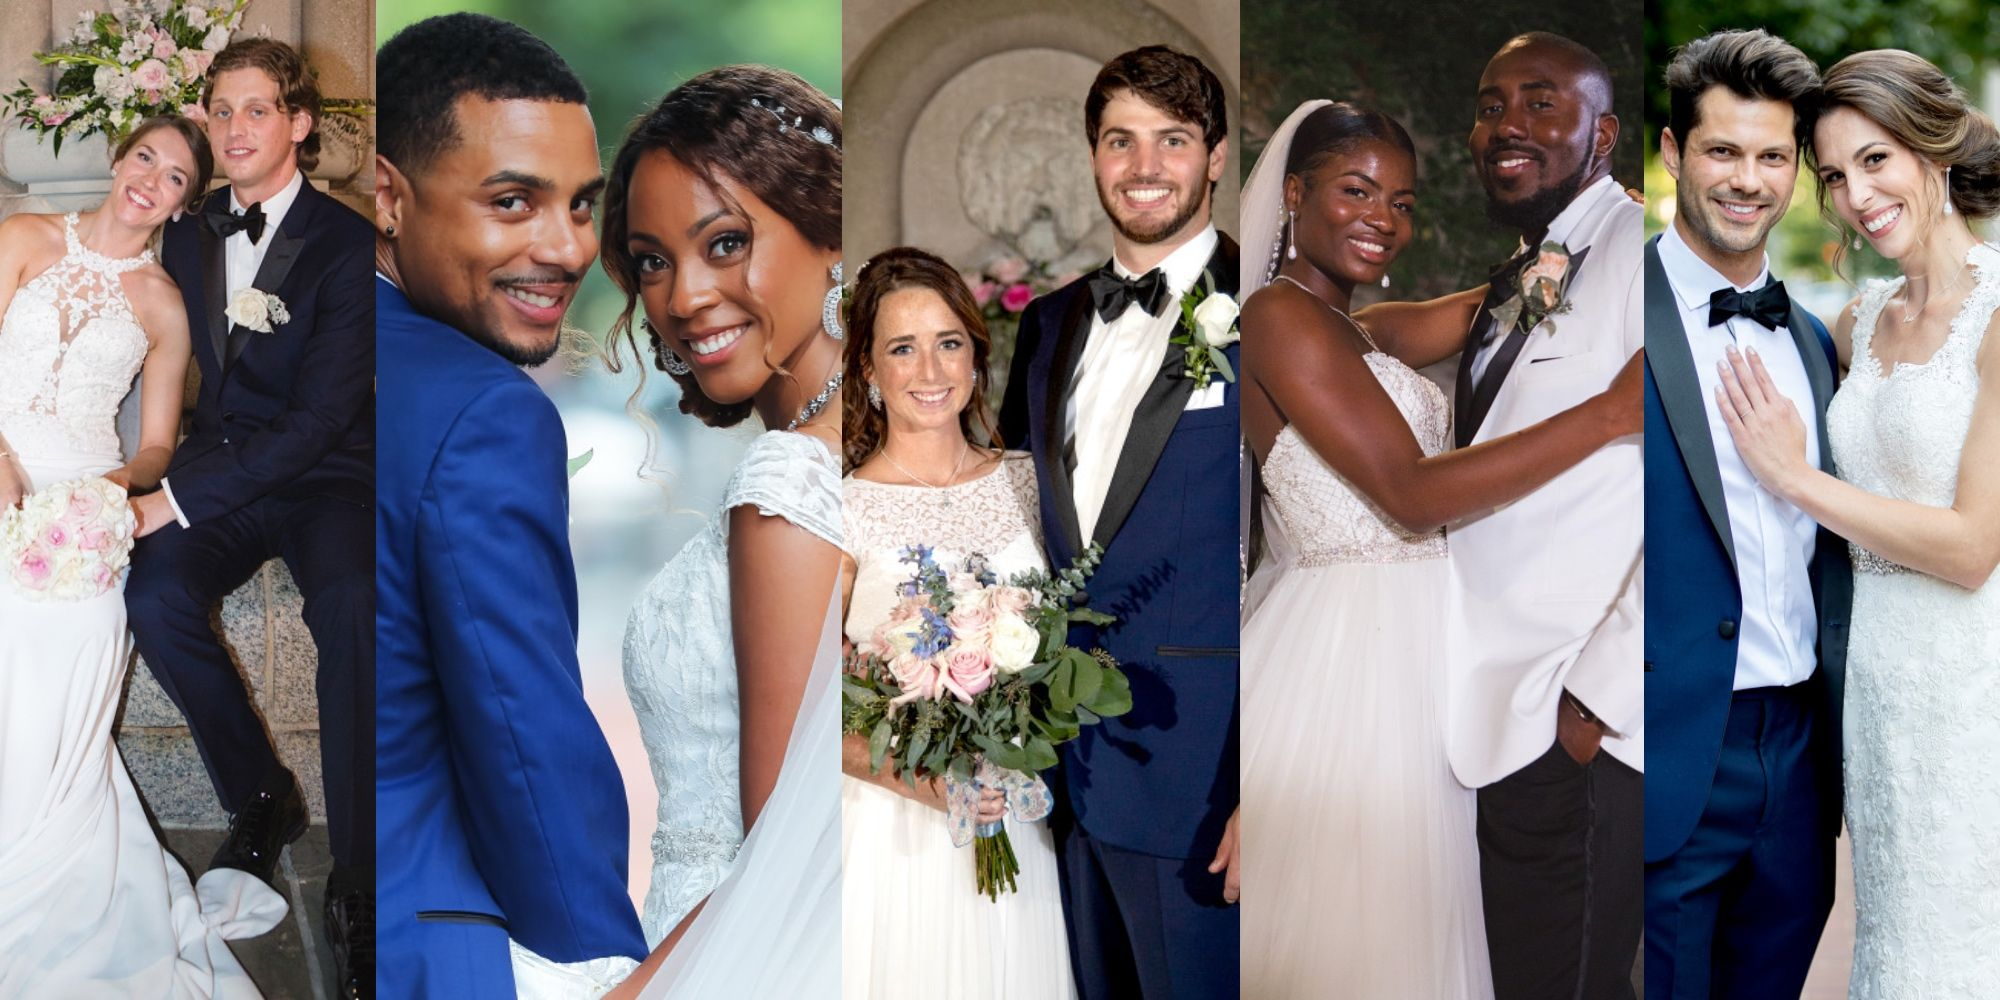 married at first sight season 10 who is still together